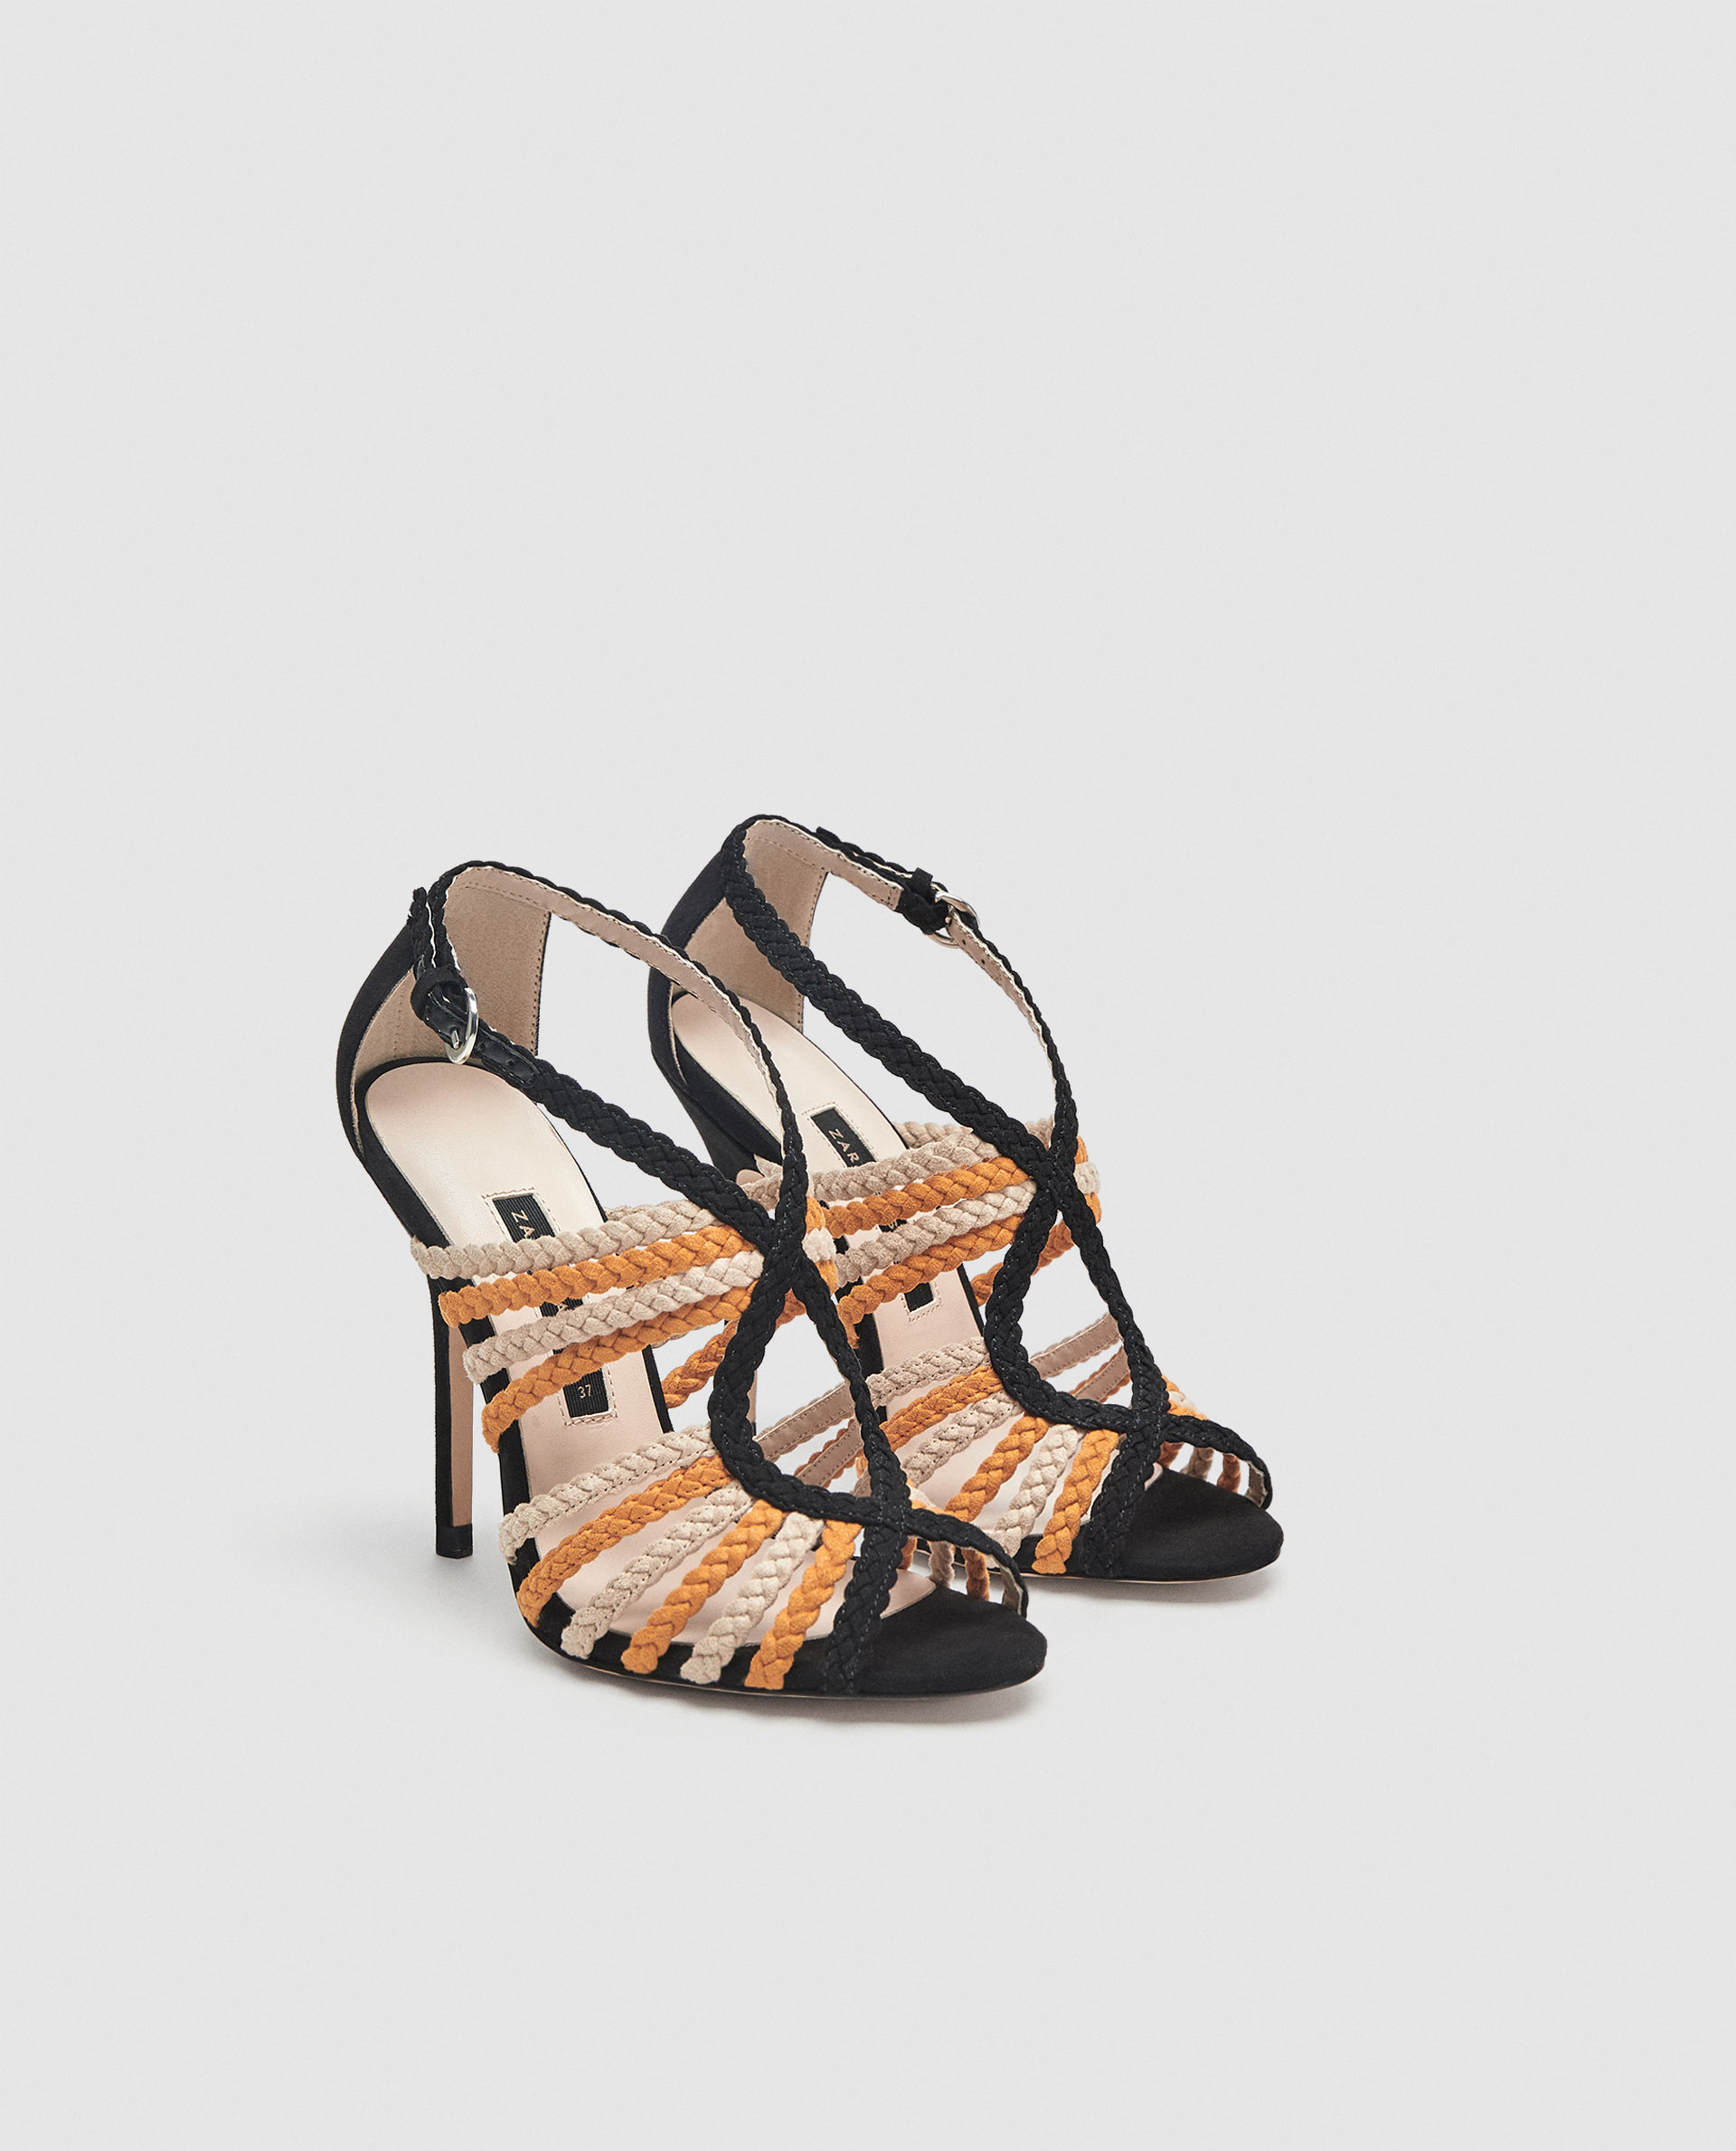 Zara Shoeplay Shoes para mujer Fashion Blog sandalias Of trenzadas IYWHeEb2D9